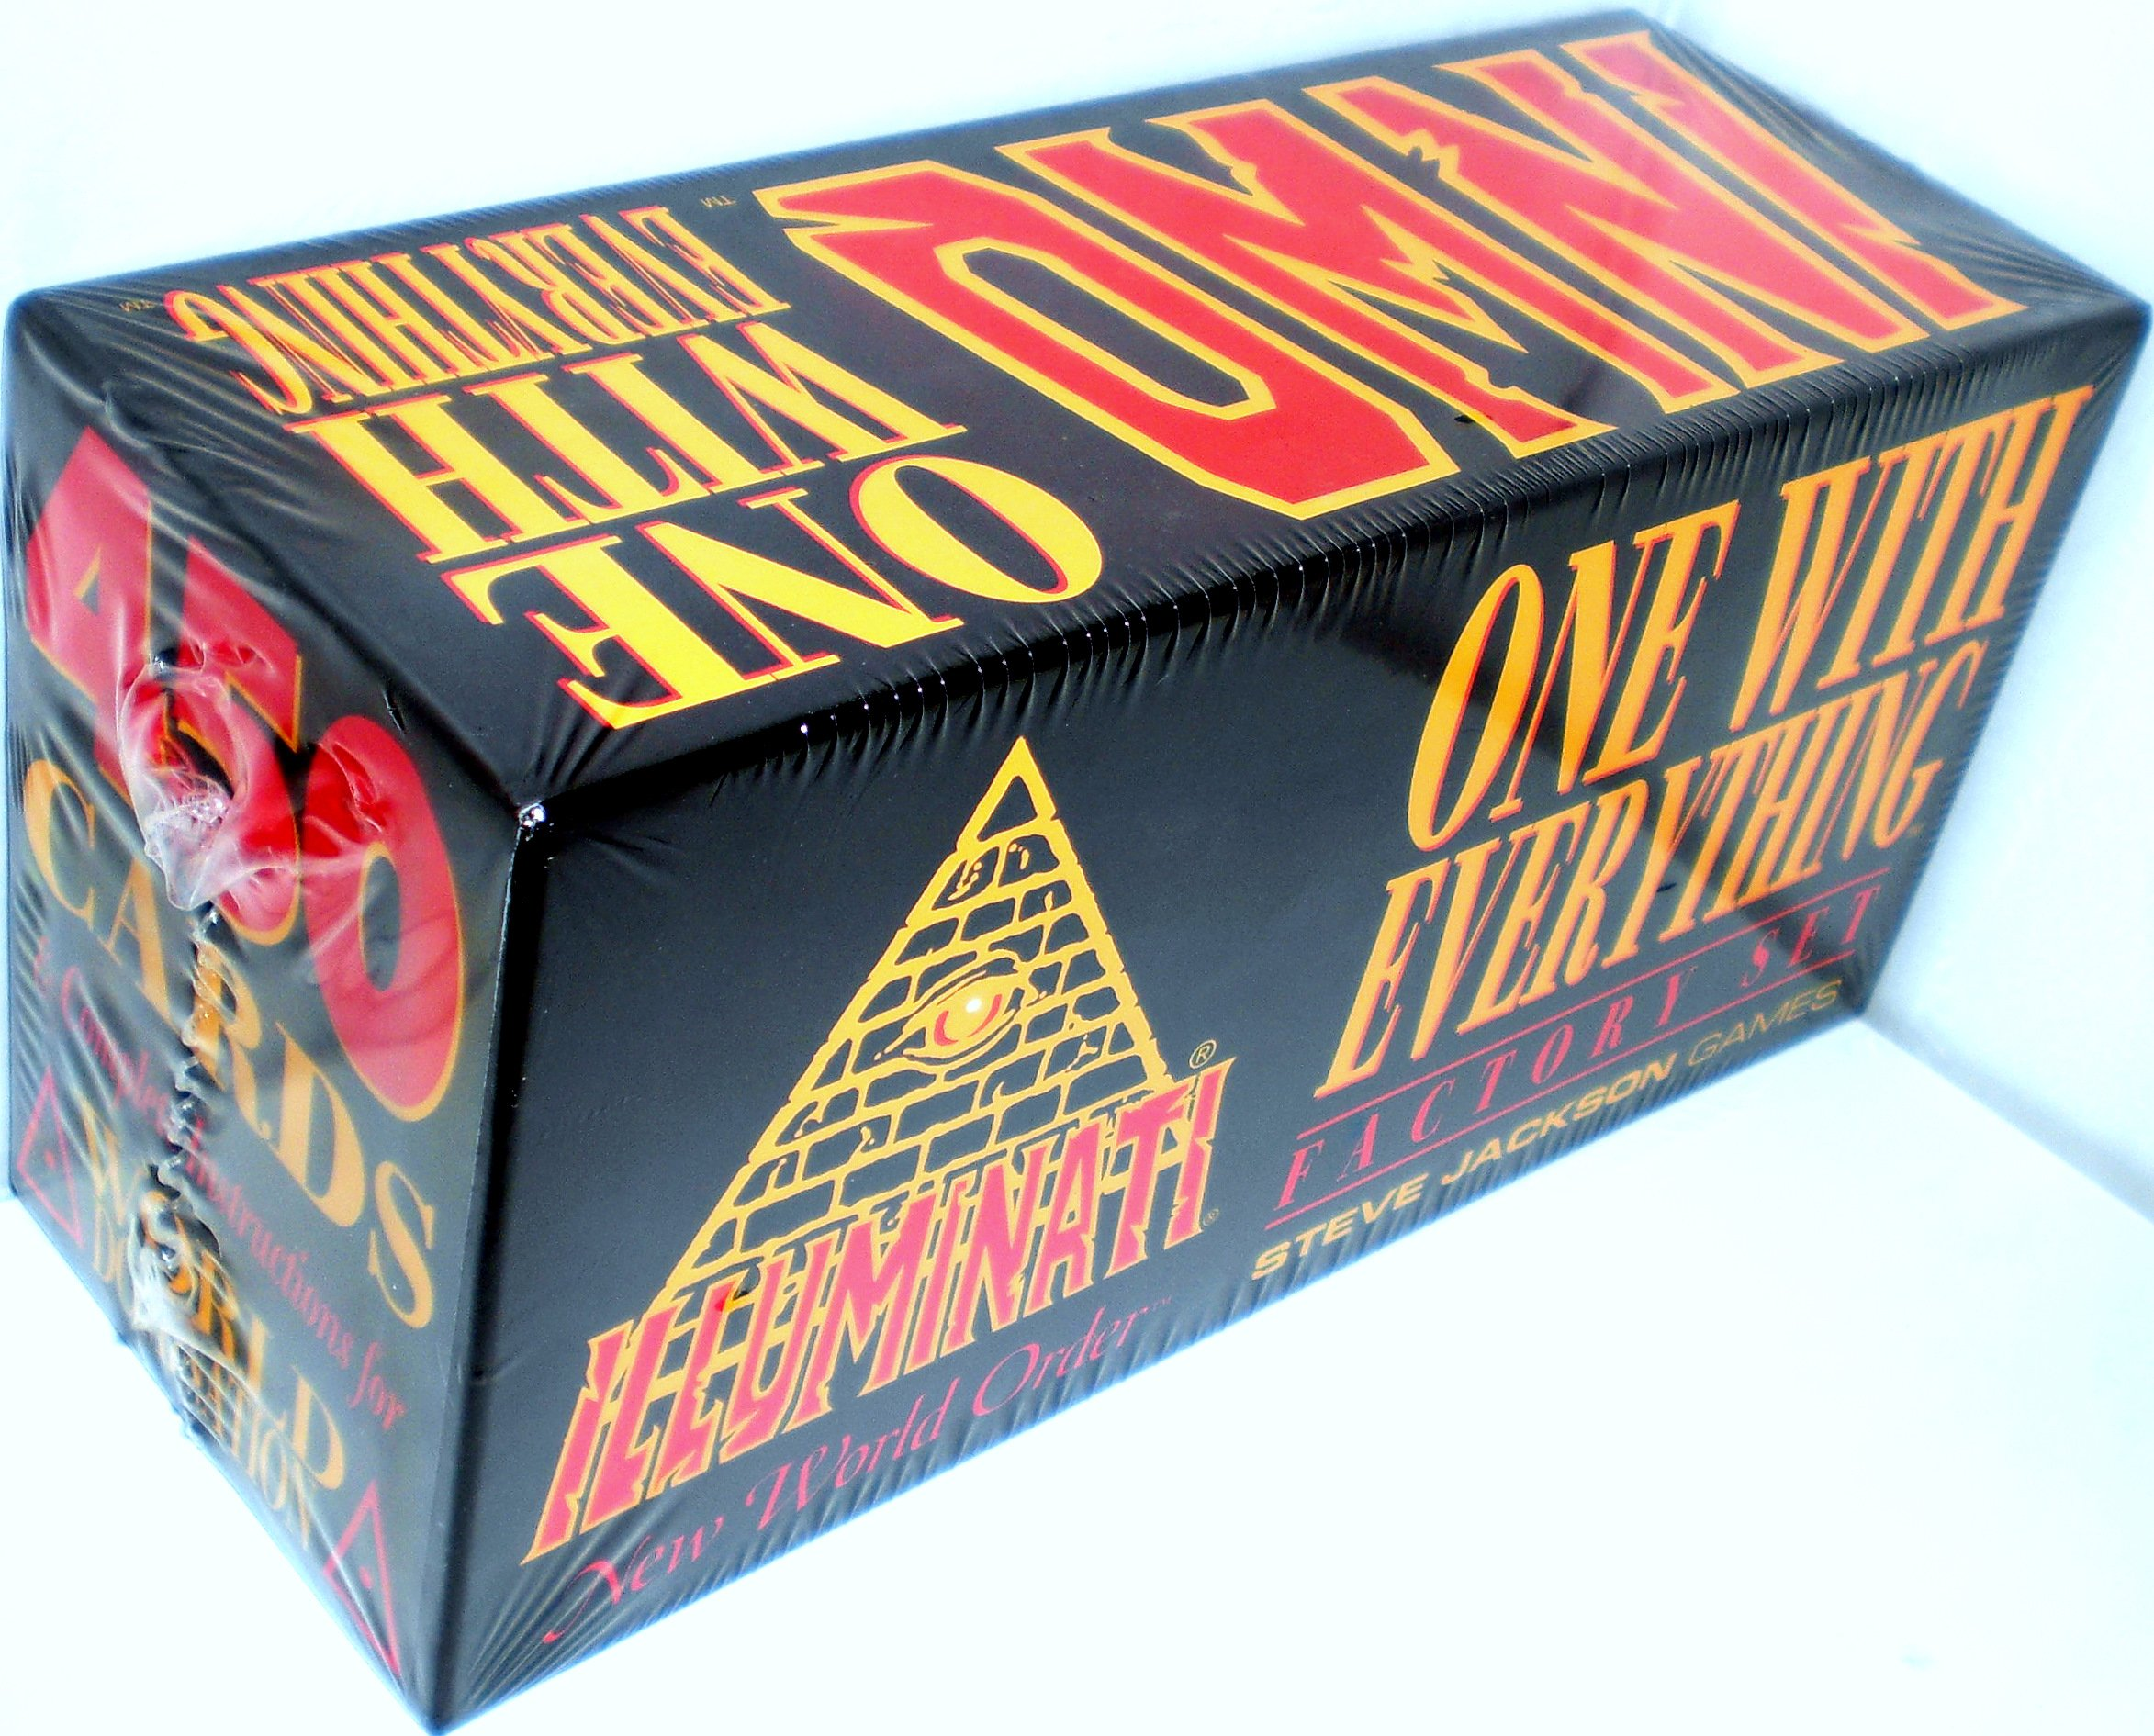 INWO CCG Illuminati New World Order One With Everything 1995 Factory Set By Steve Jackson (Collectible Card Game Original Version 1.1 March 1995)- Factory Set